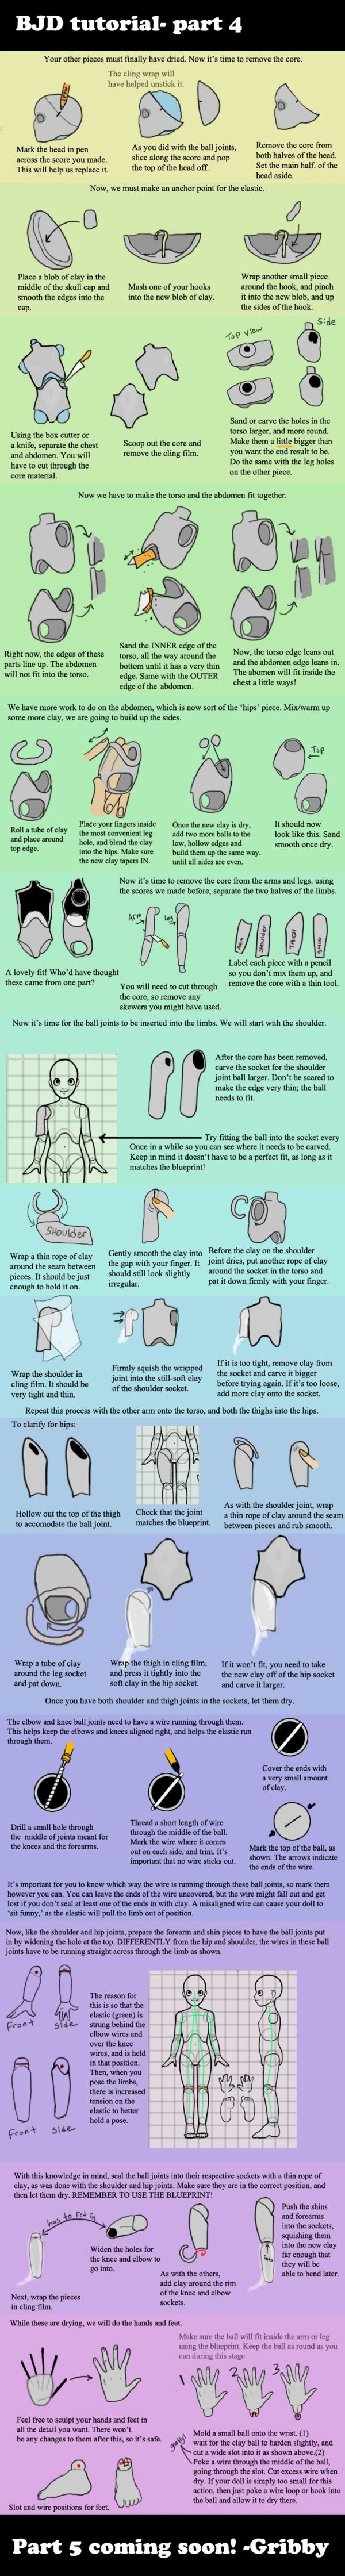 Ball jointed doll tutorial part 4 by *Deskleaves on deviantART by diana